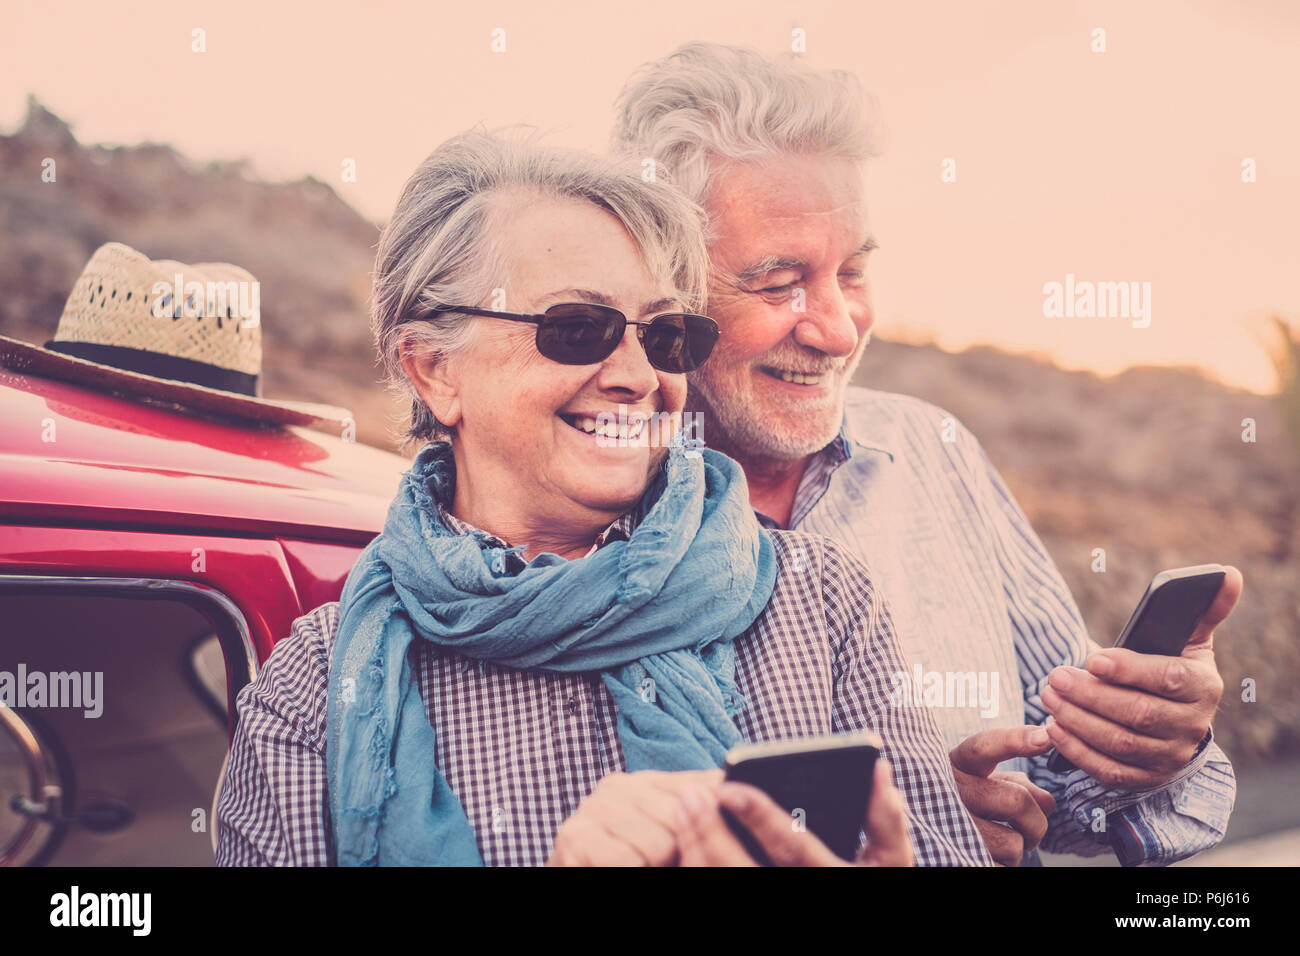 Elderly couple with hat, with glasses, with gray and white hair, with casual shirt, on vintage red car on vacation enjoying time and life. With a chee - Stock Image